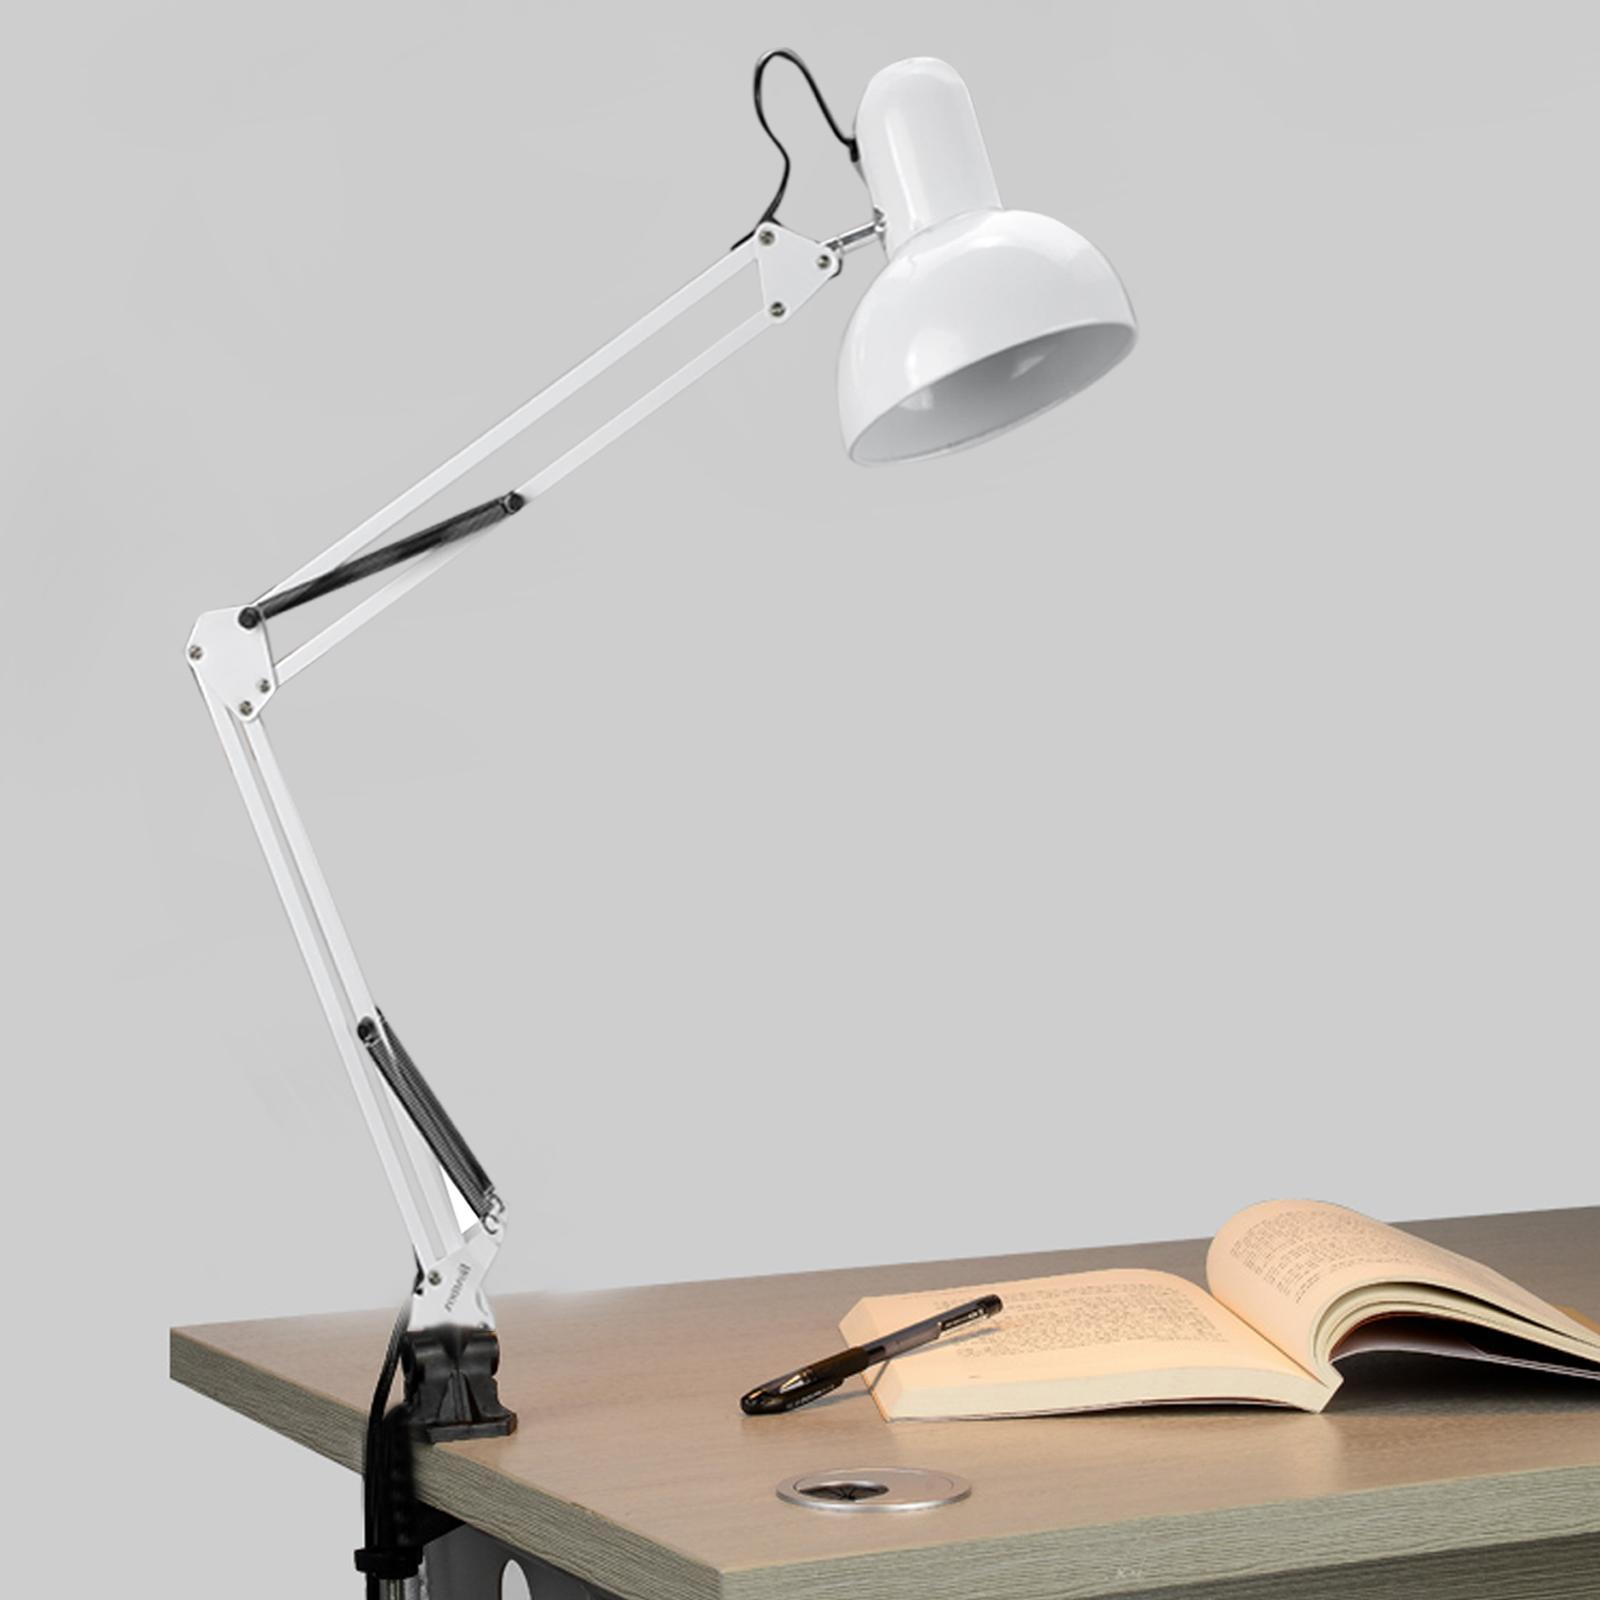 Adjustable Swing Arm Lamp Classic Architect Clamp-on Desk Lamp Light (Bulb excluded) DADEA by